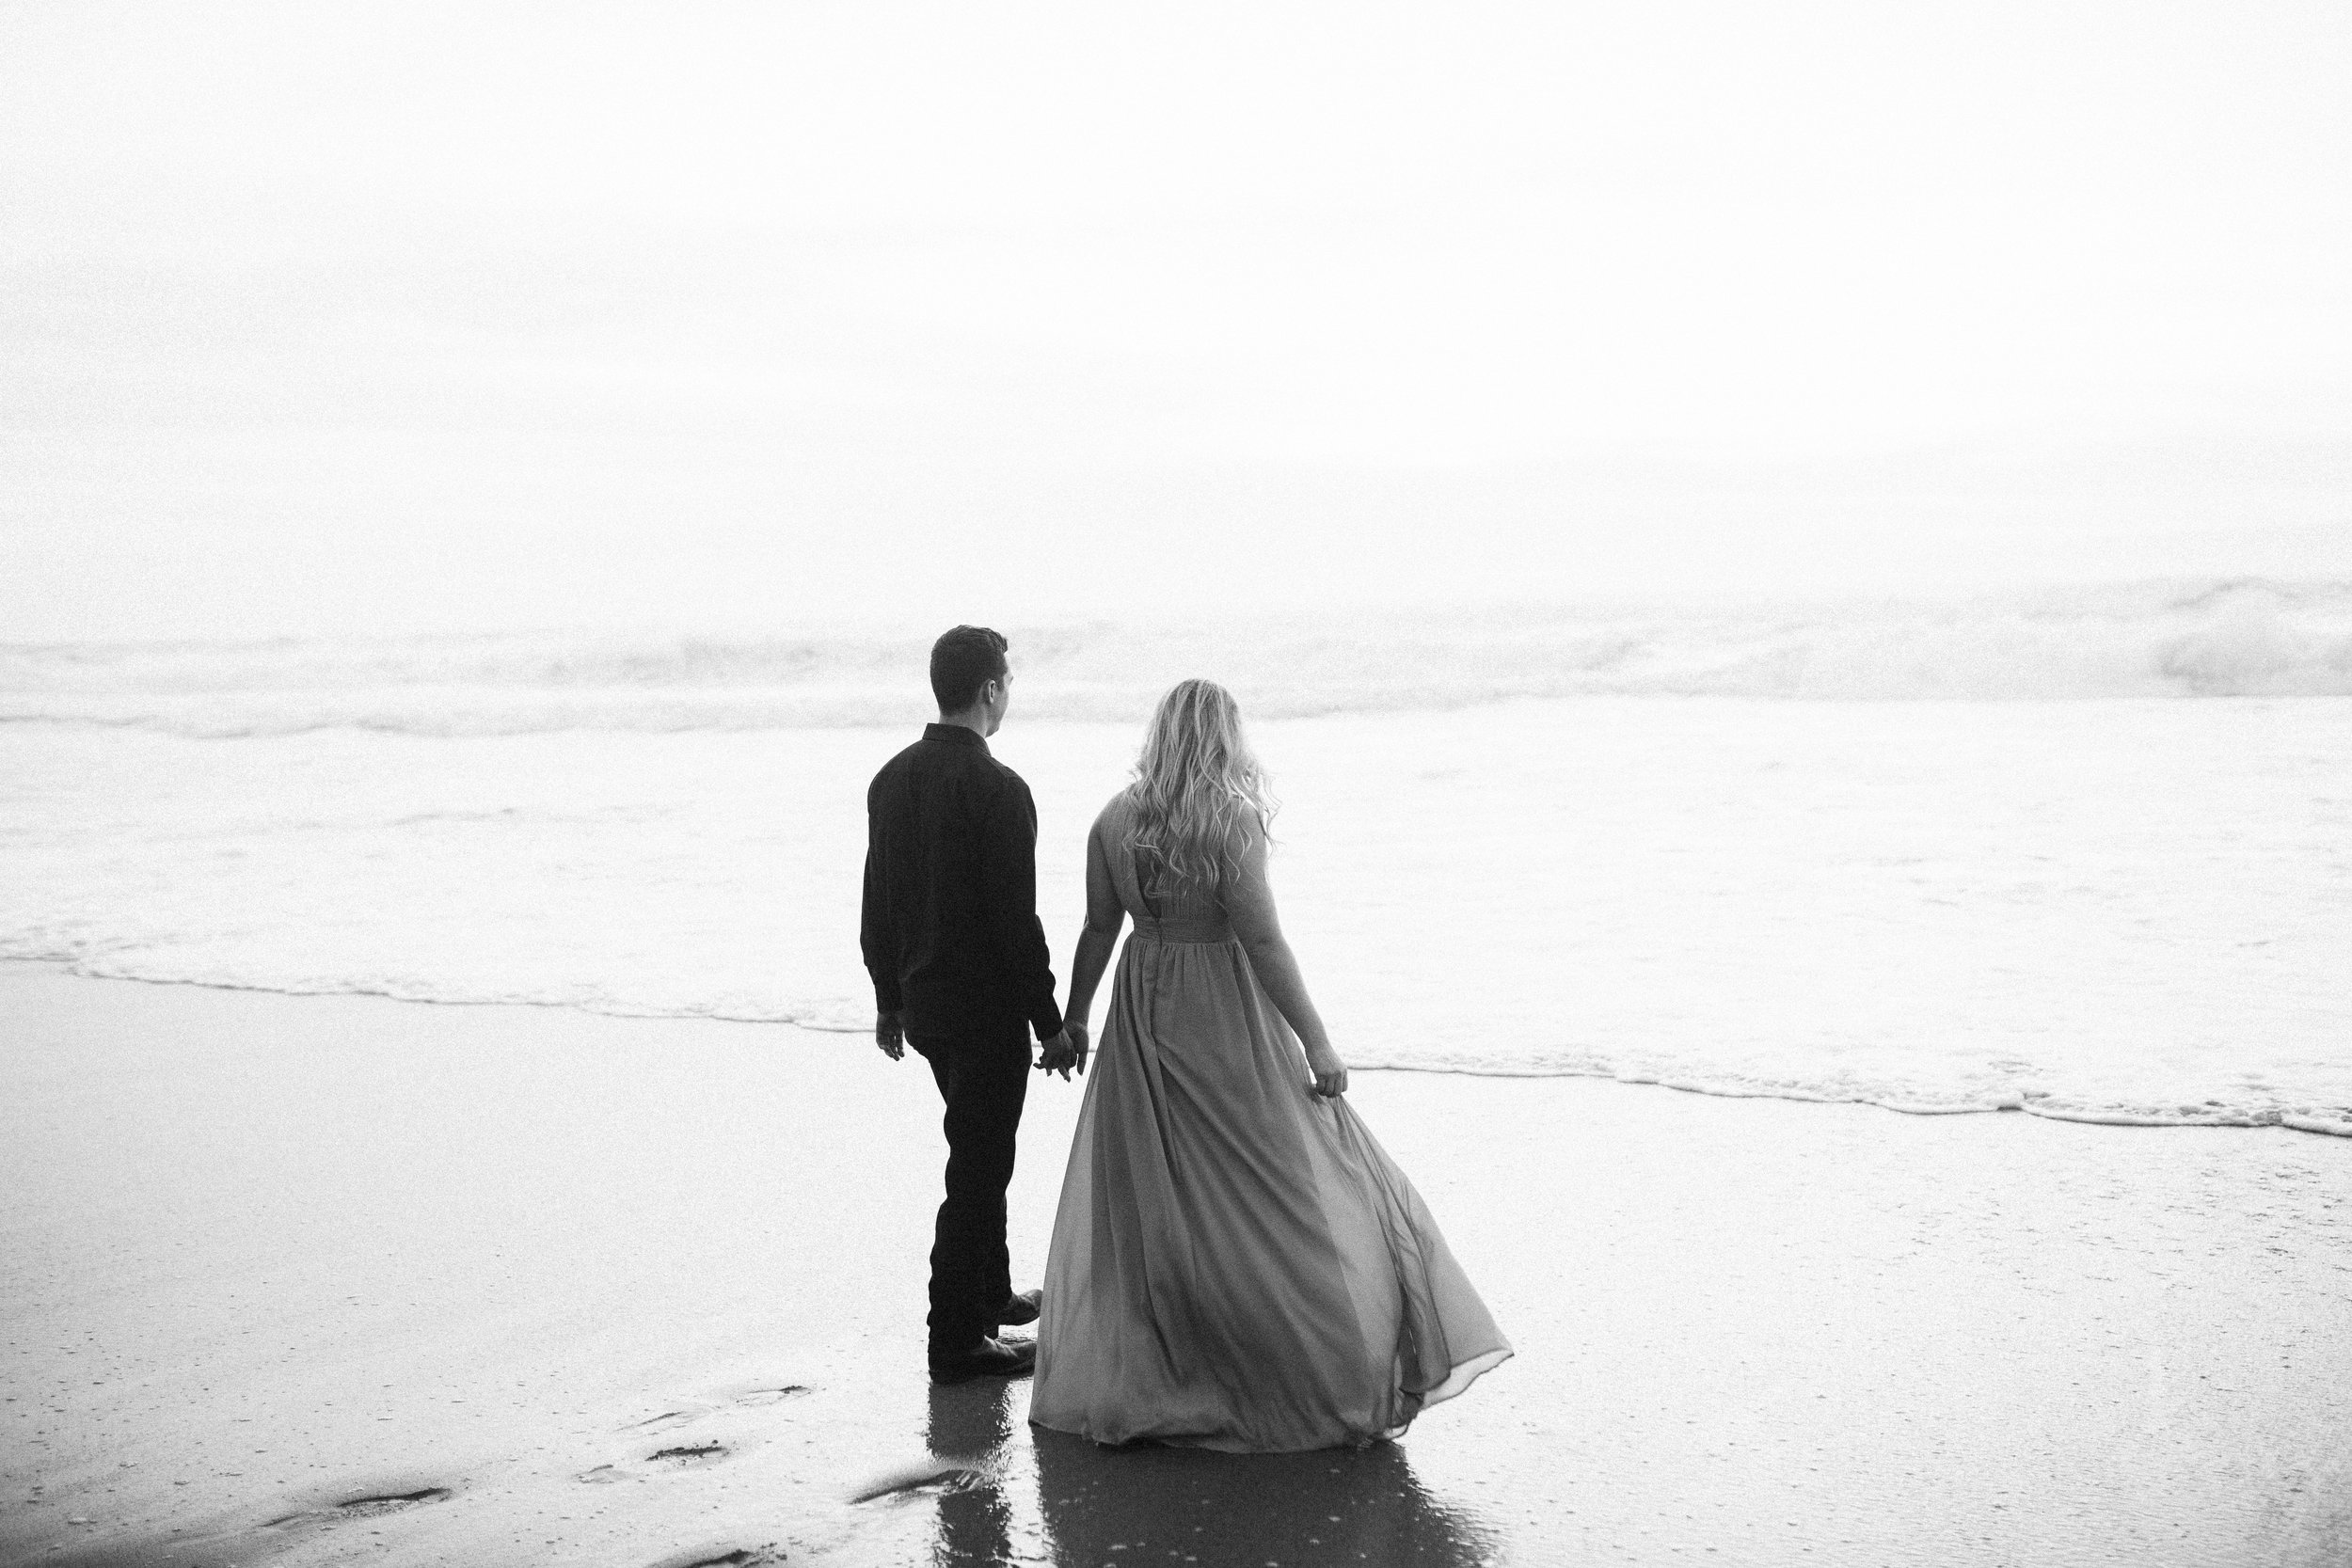 Nicole-Daacke-Photography-big-sur-garrapatta-state-park-adventurous-engagement-session-bixy-bridge-elopement-big-sur-wedding-photographer-monterey-elopement-photographer-california-golden-sunset-coast-photos-59.jpg